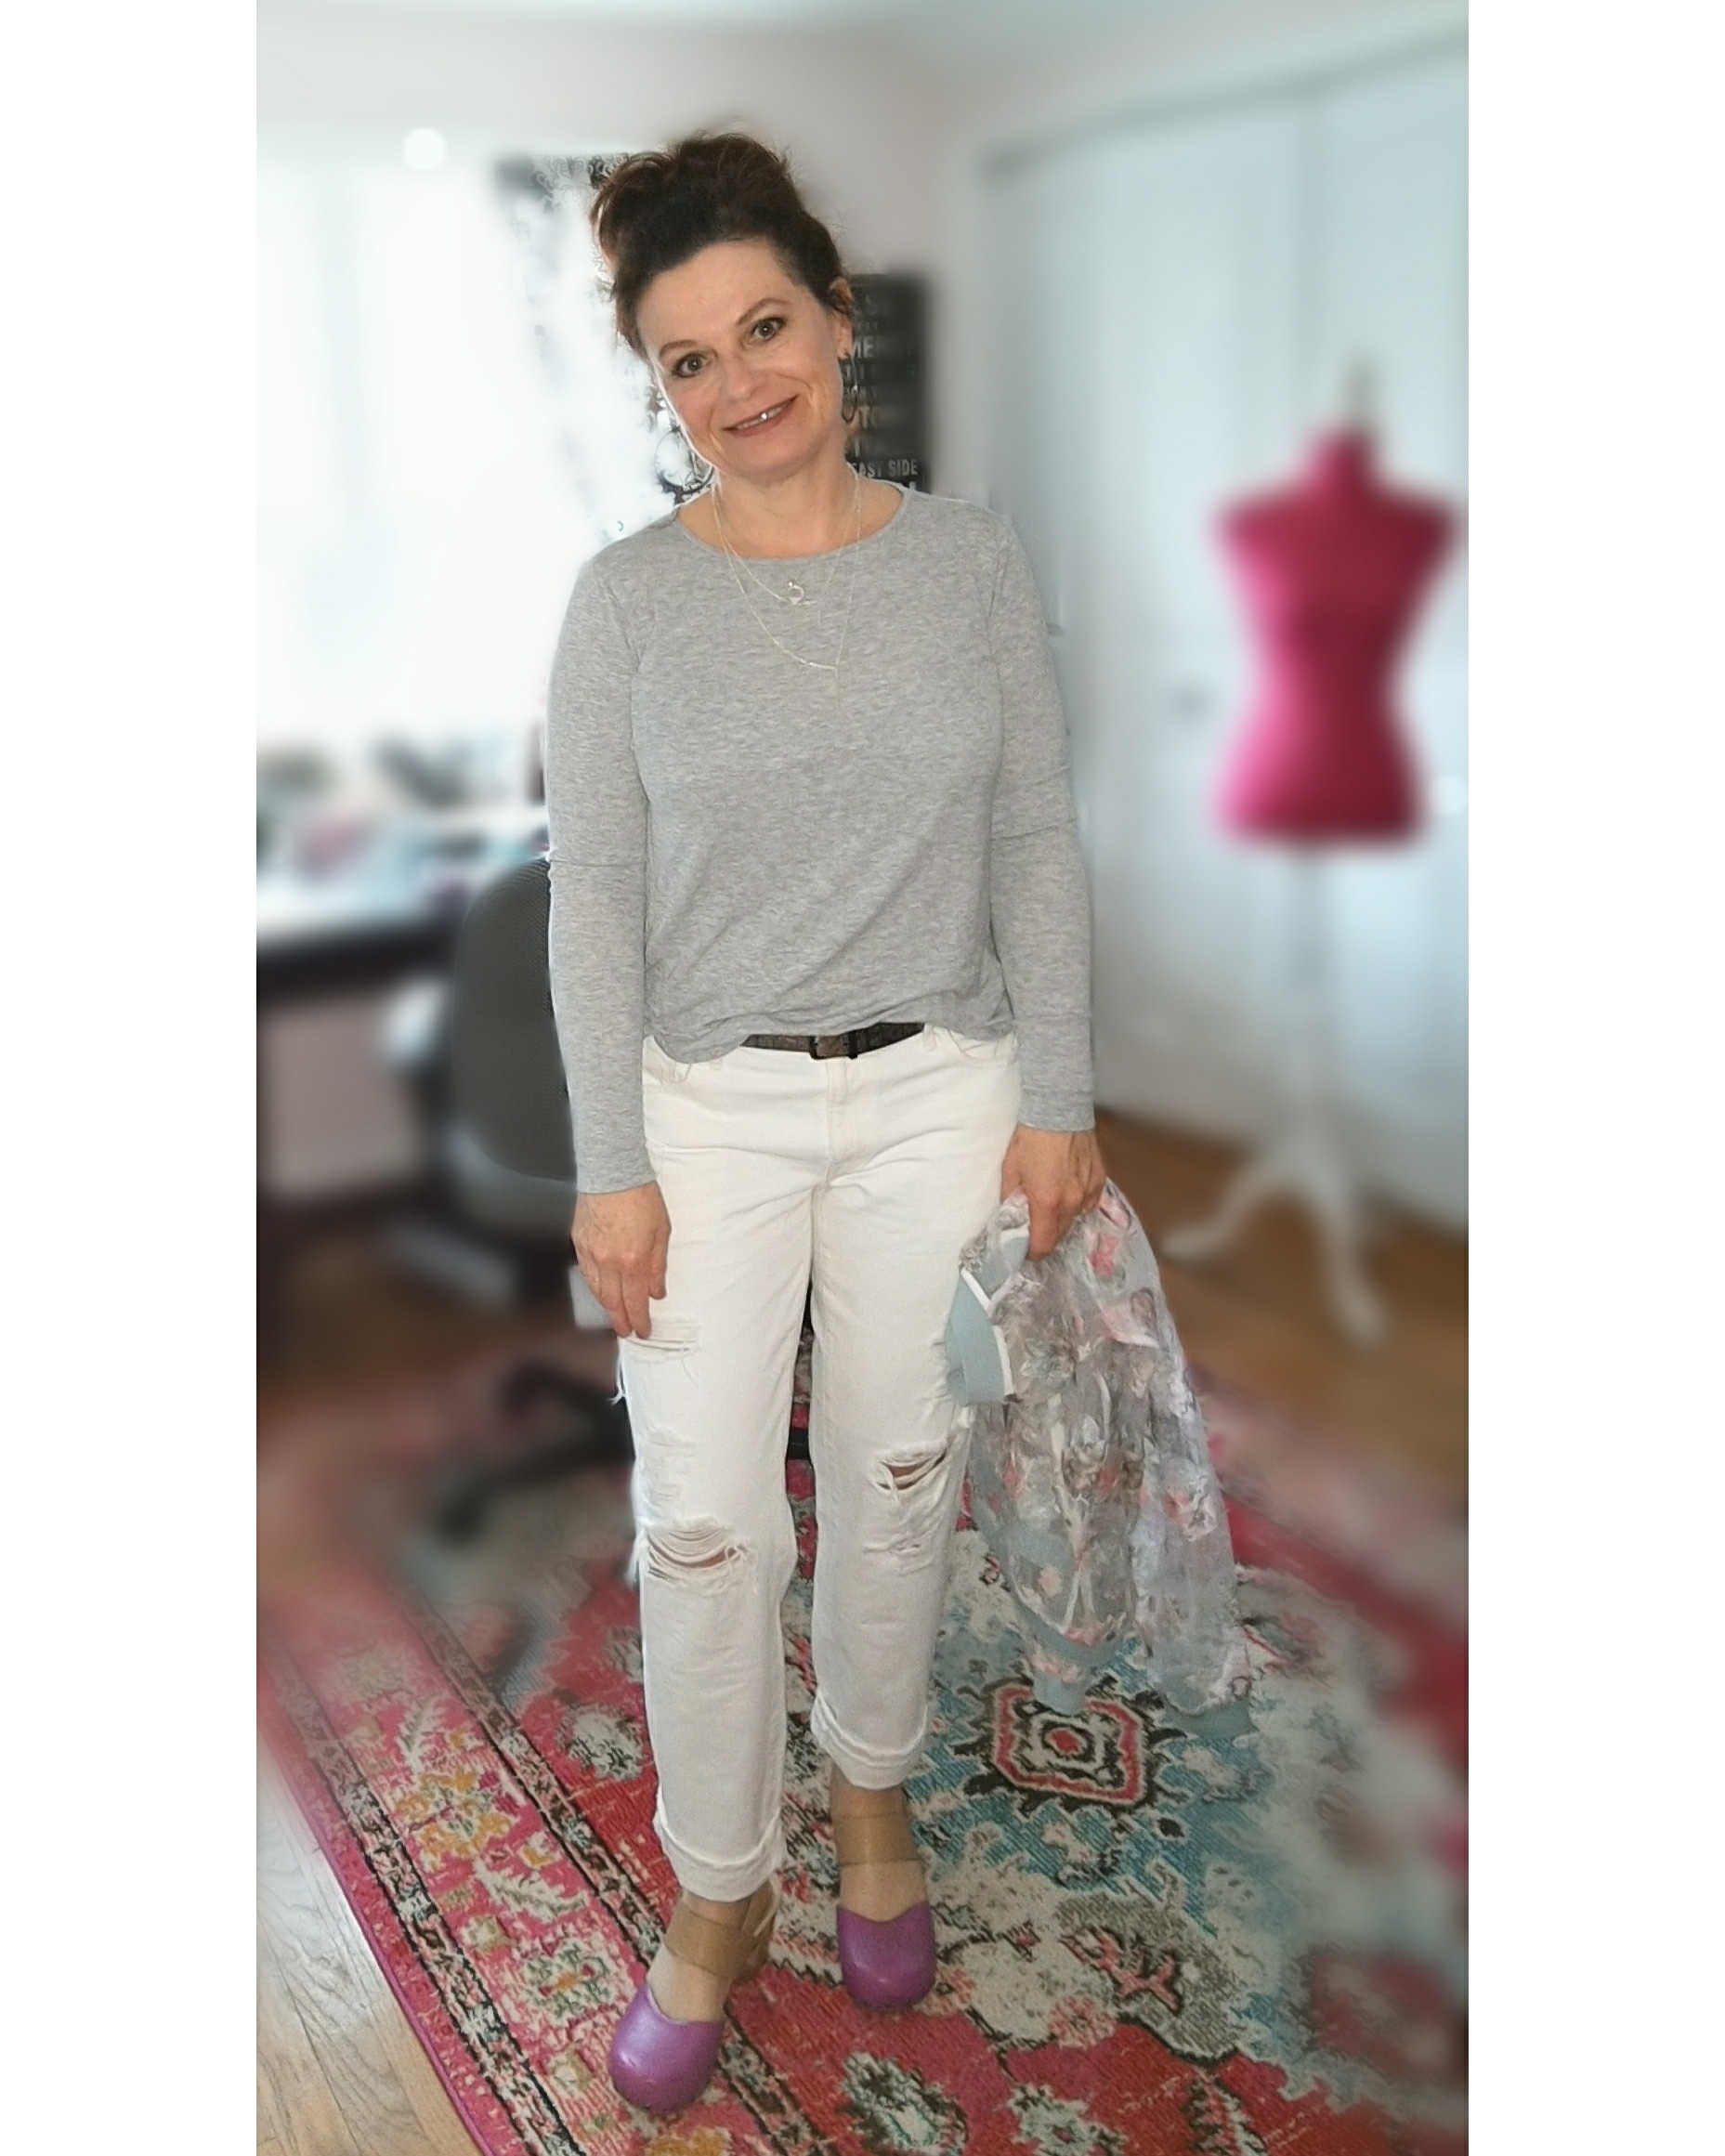 The White Jean tryout.... - I have avoided white jeans, well, forever. I am happy to assist a client find the perfect pair but I've never wanted to wear them myself. Well, I'm giving it a go this year. We will see if they make it.I have linked similar pieces below. The link to the jeans are the exact jeans I'm wearing. The others are similar as they are all past season goodies.